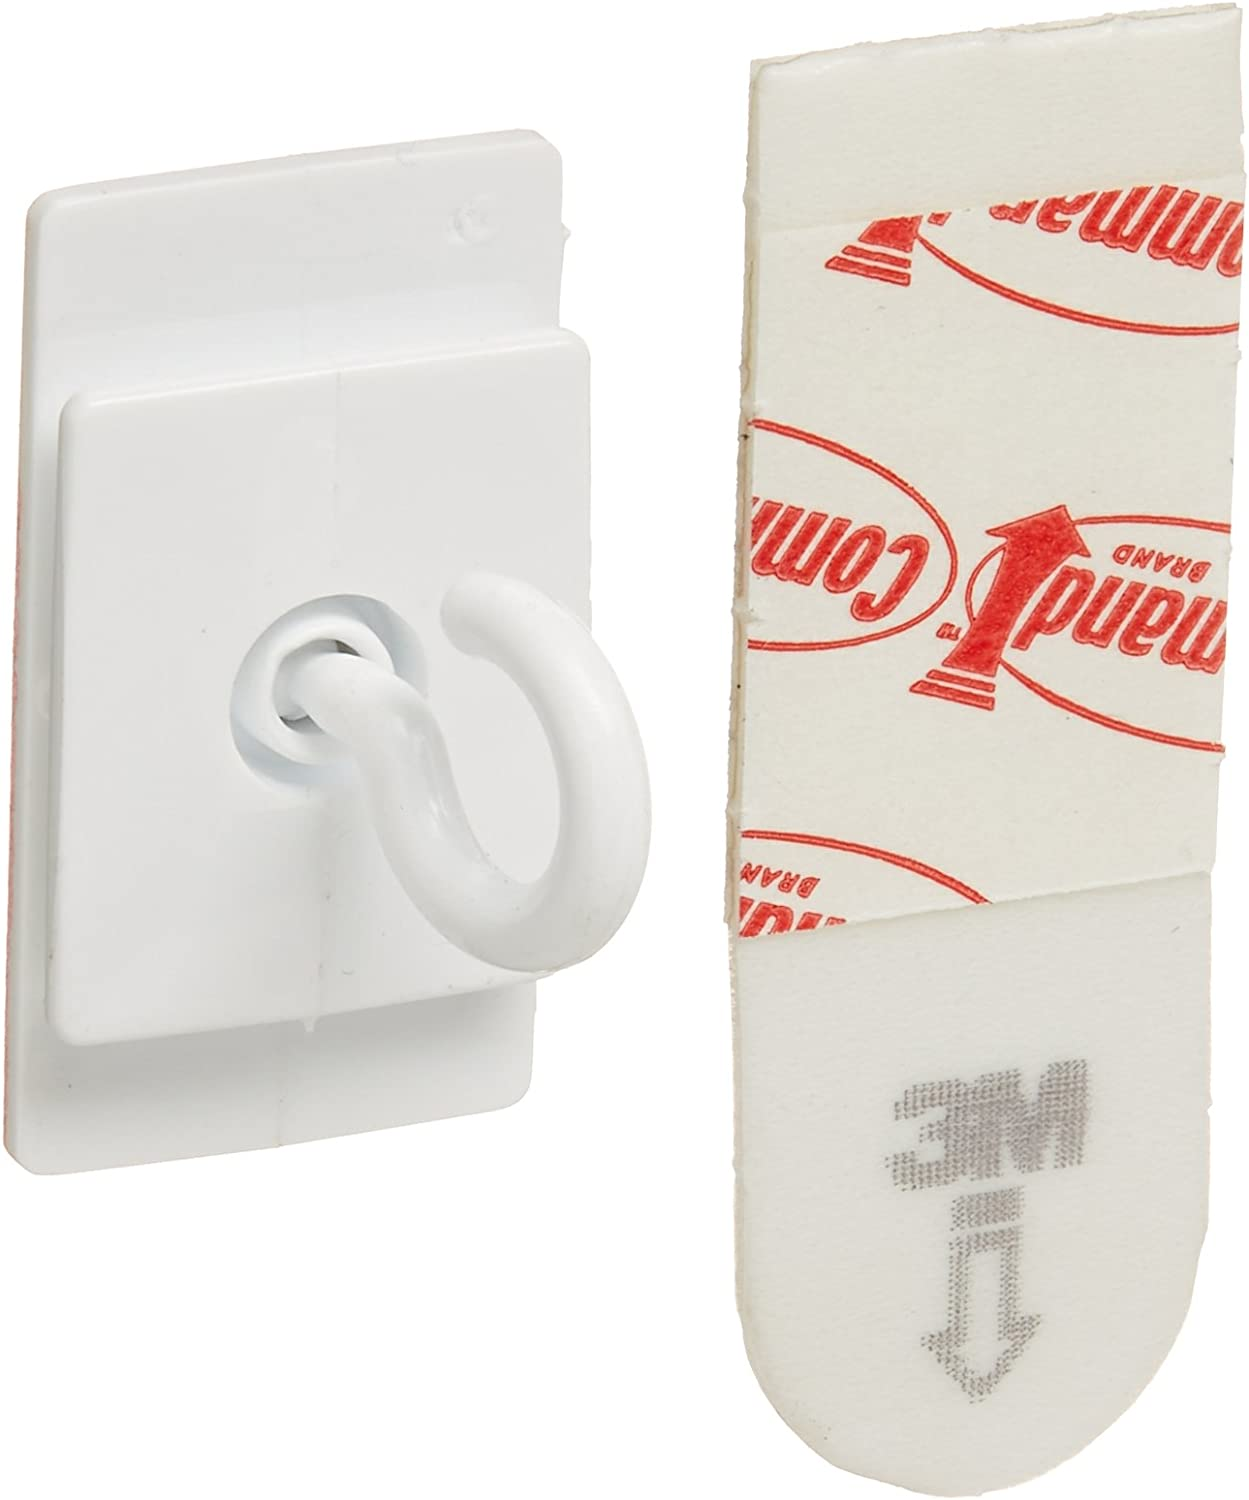 3M Company 3CT Command Ceiling Hooks, 1, Plain